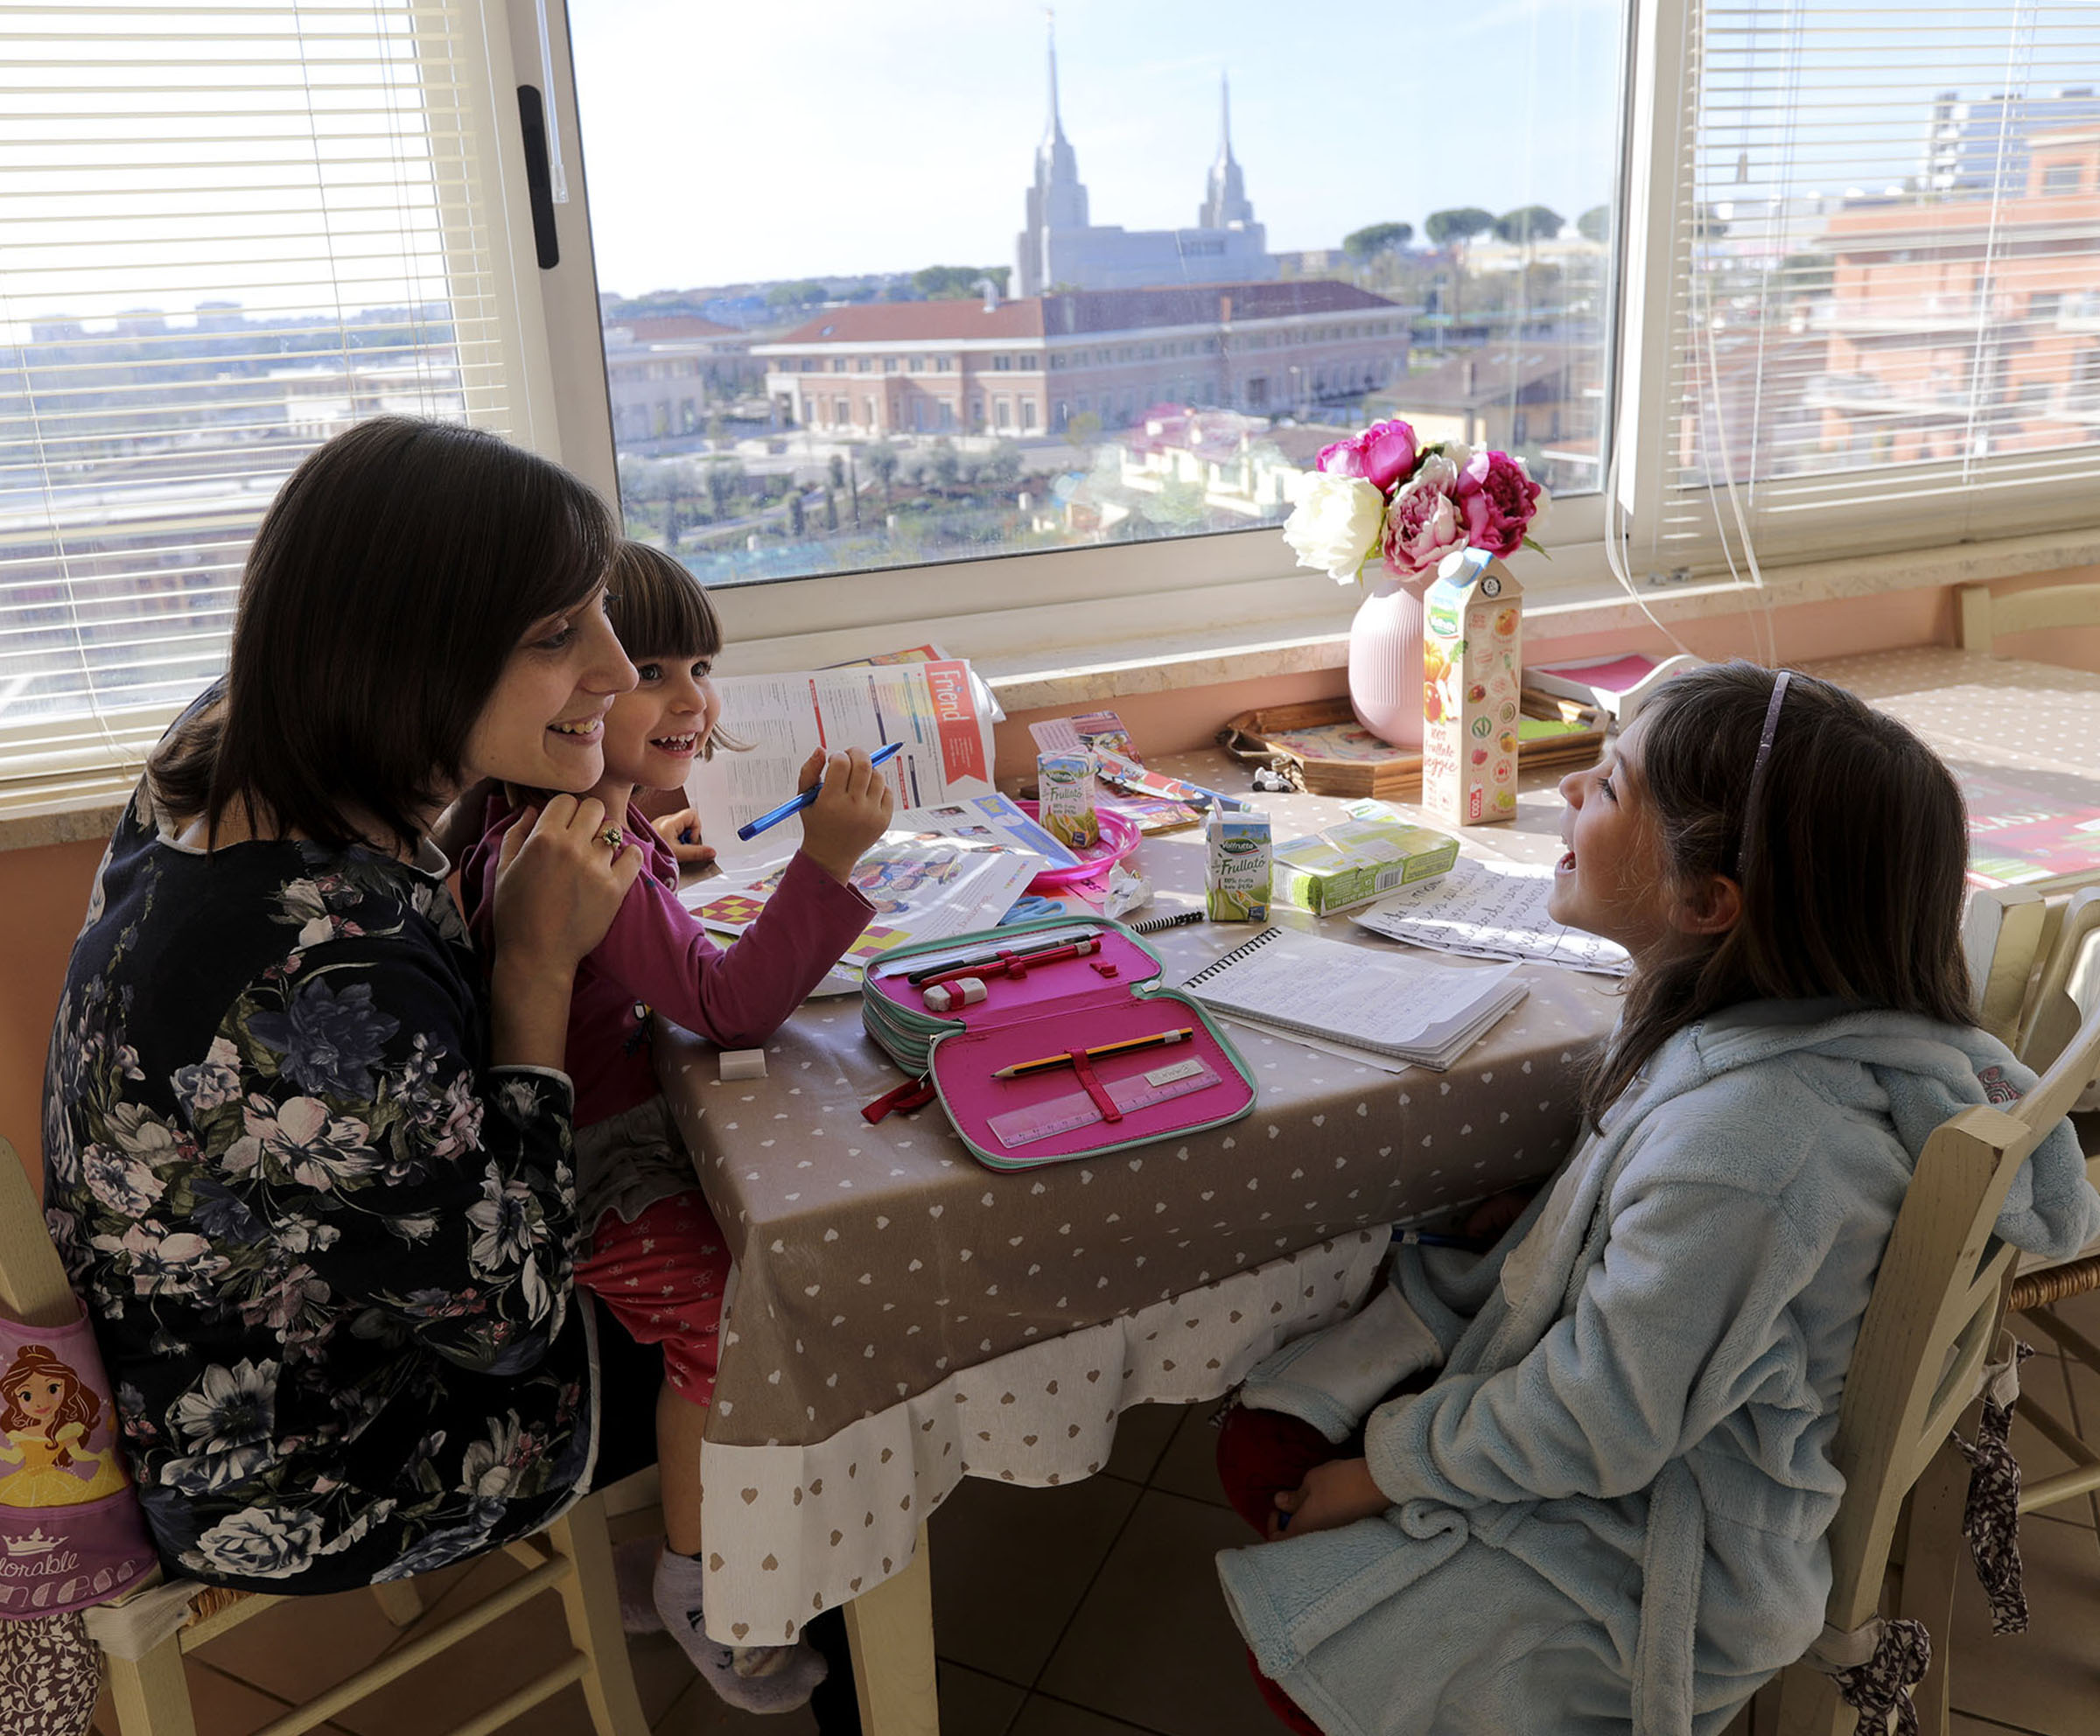 Norma Salerno chats with her daughters, Alice and Emma, at the kitchen table, overlooking the Rome Temple, at home in Rome, Italy, on Sunday morning, Nov. 18, 2018.